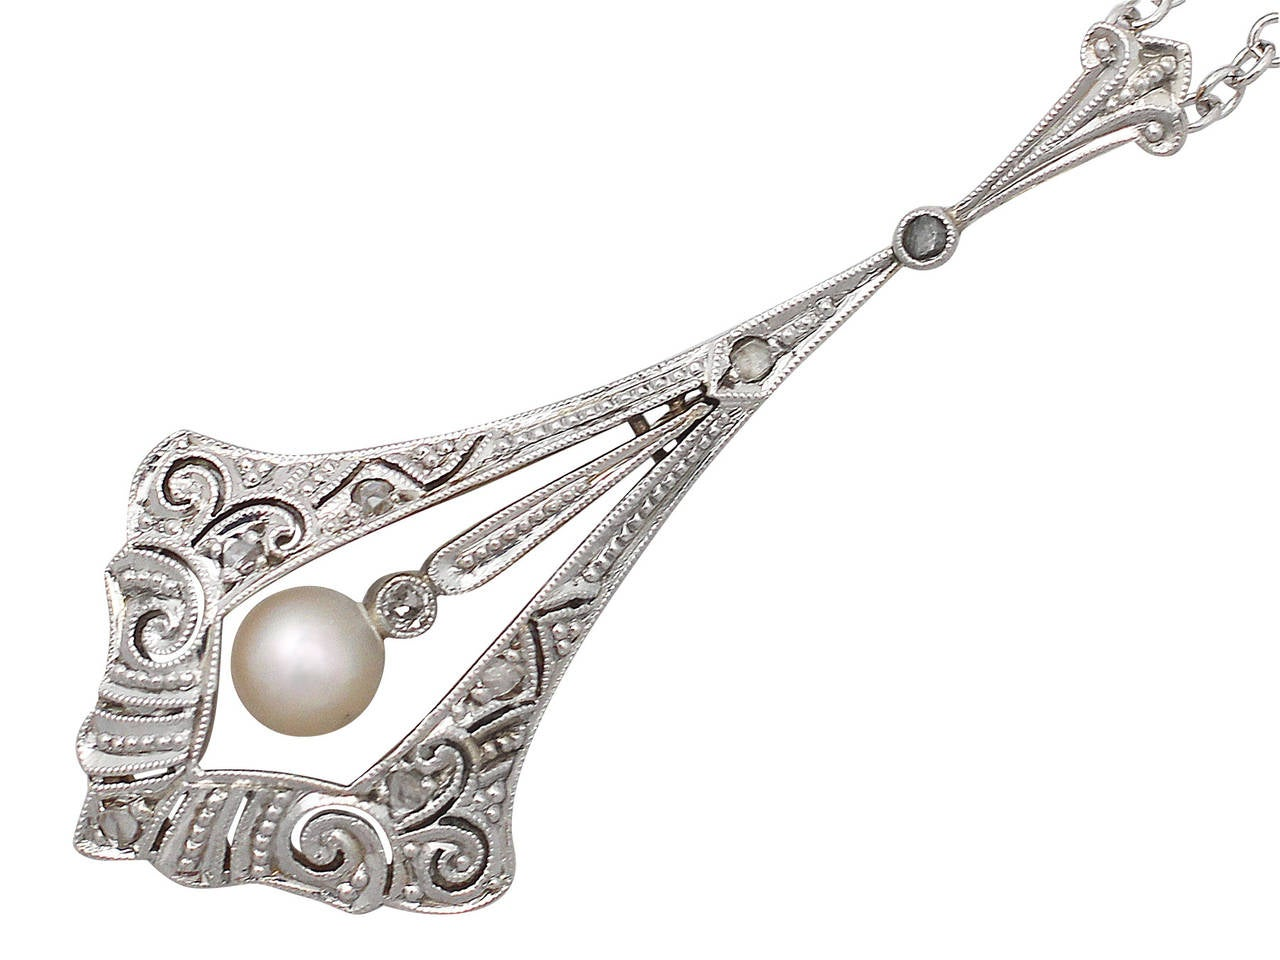 0.10Ct Diamond and Pearl, 14k Yellow Gold Pendant - Antique Circa 1920 In Excellent Condition For Sale In Jesmond, GB